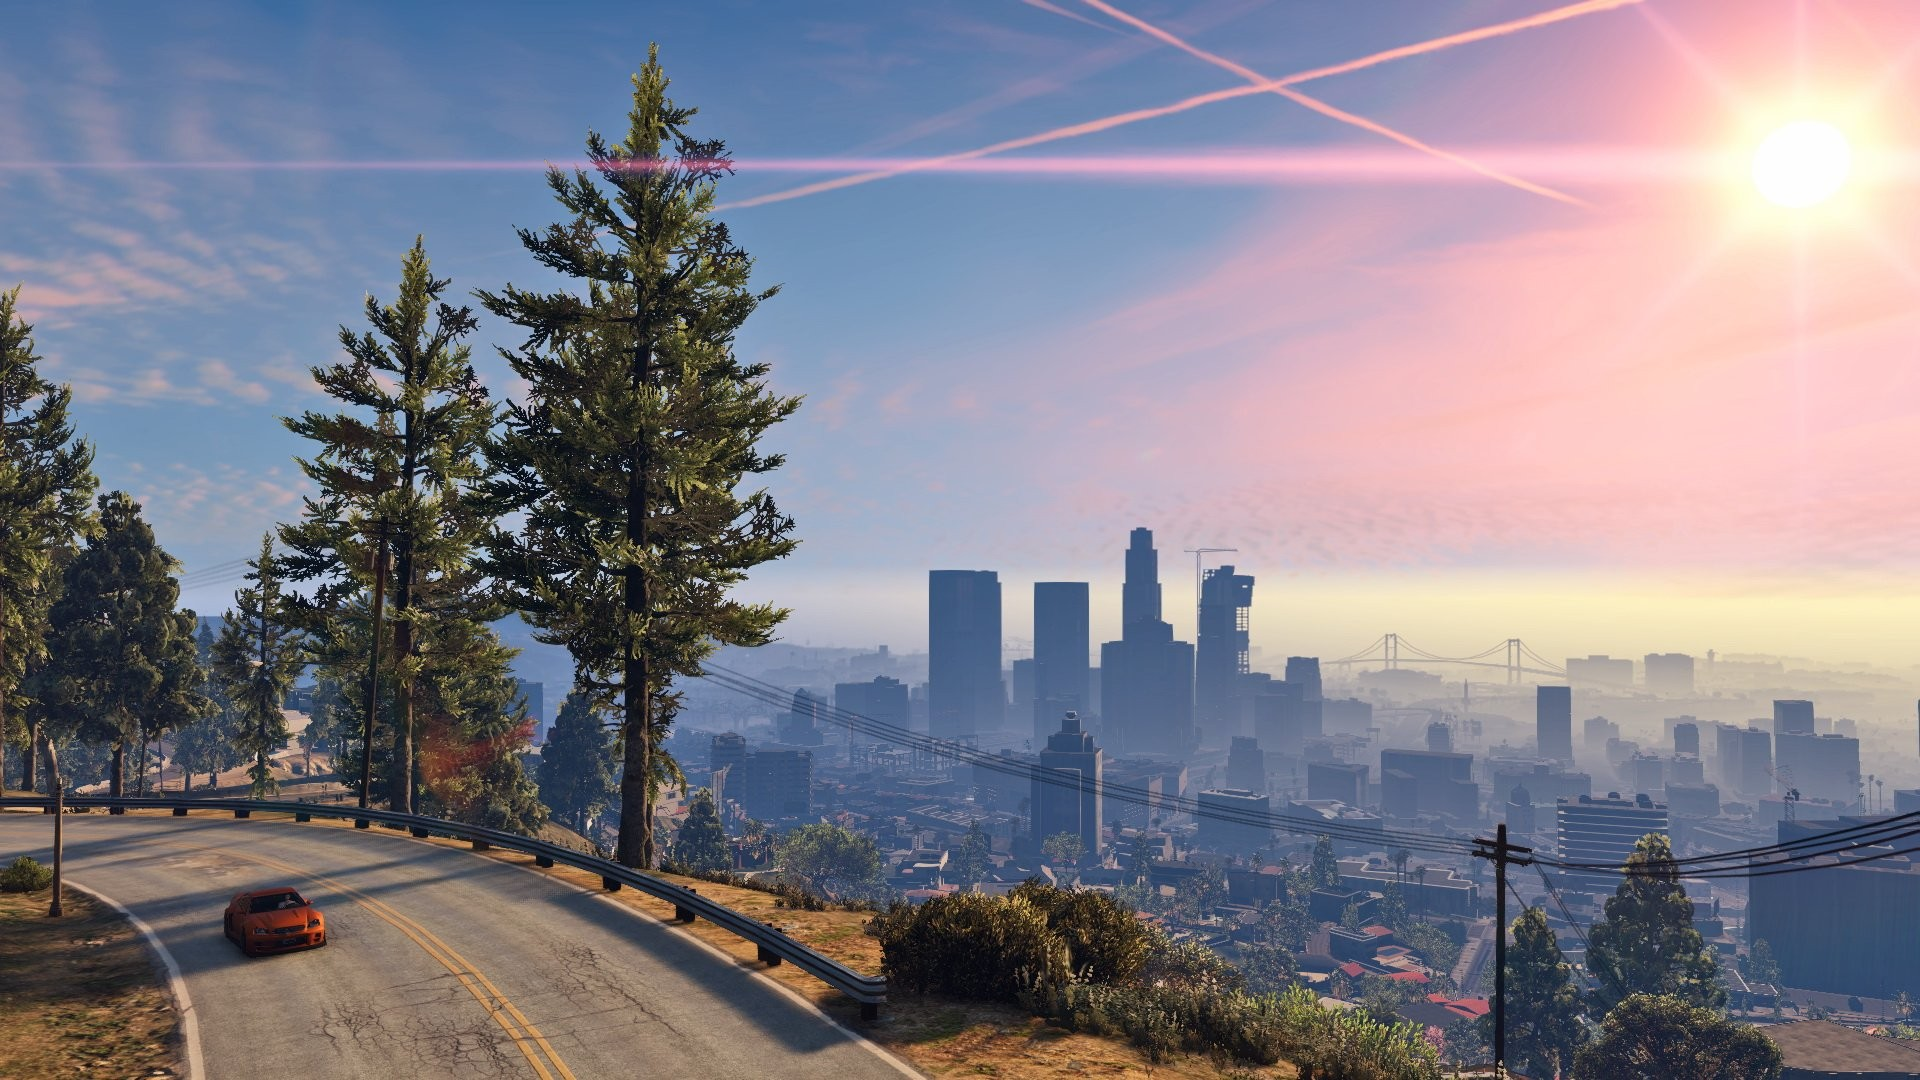 Gta 5 Background ① Download Free Cool Full Hd Backgrounds For